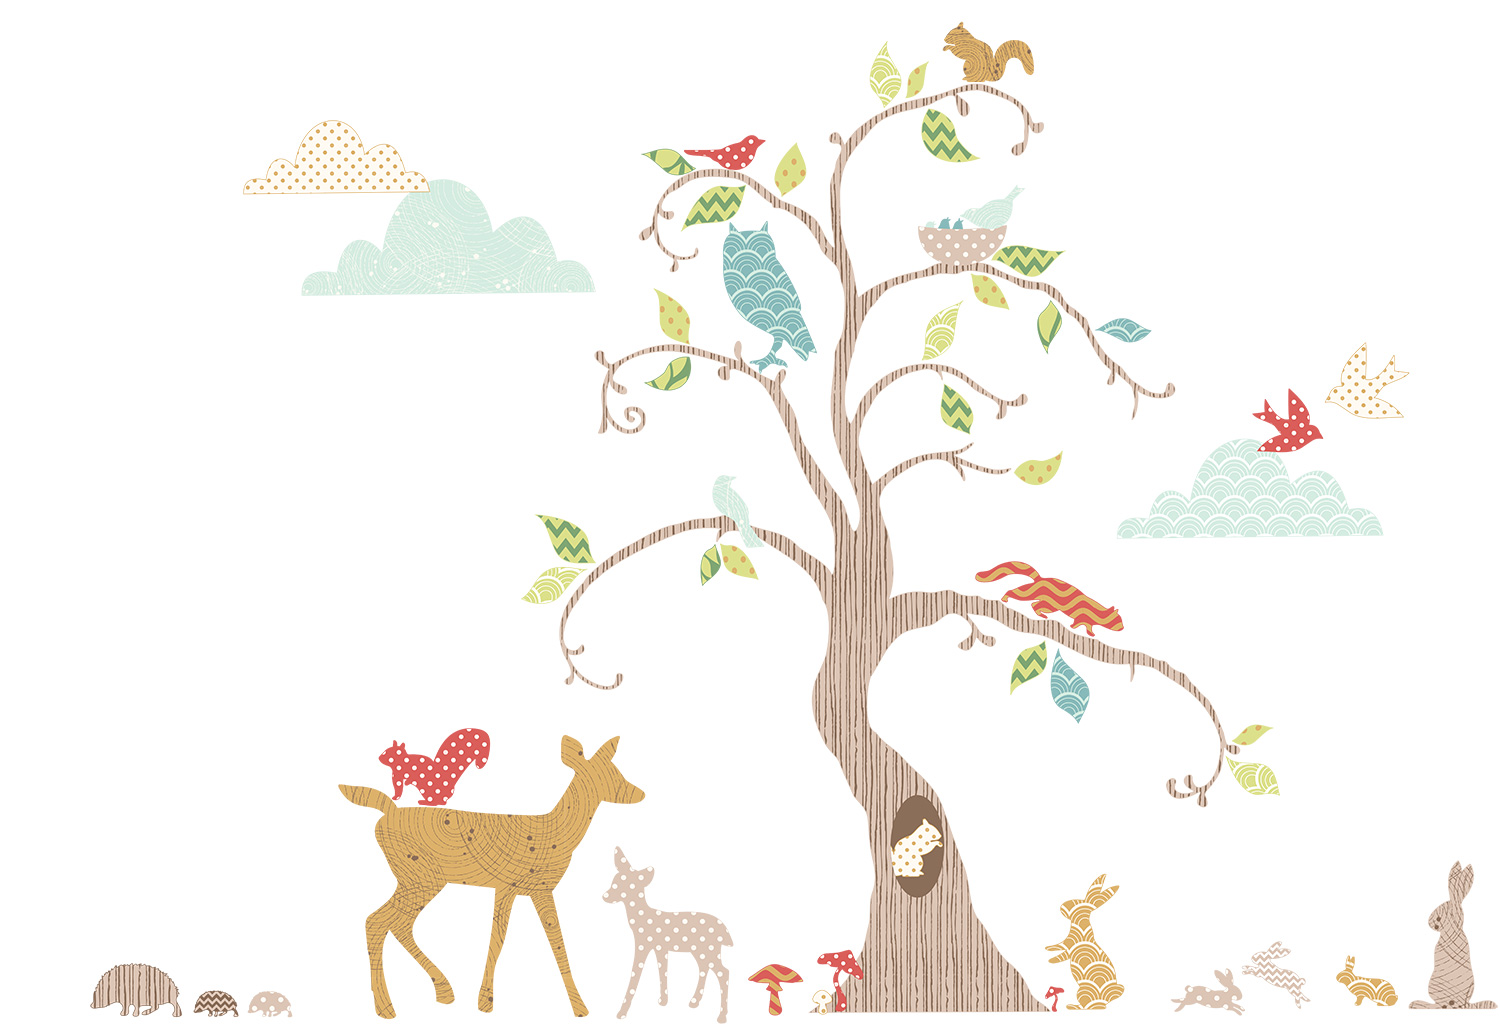 76 riesige wandsticker wandtattoo waldtiere eule deko kinderzimmer babyzimmer. Black Bedroom Furniture Sets. Home Design Ideas